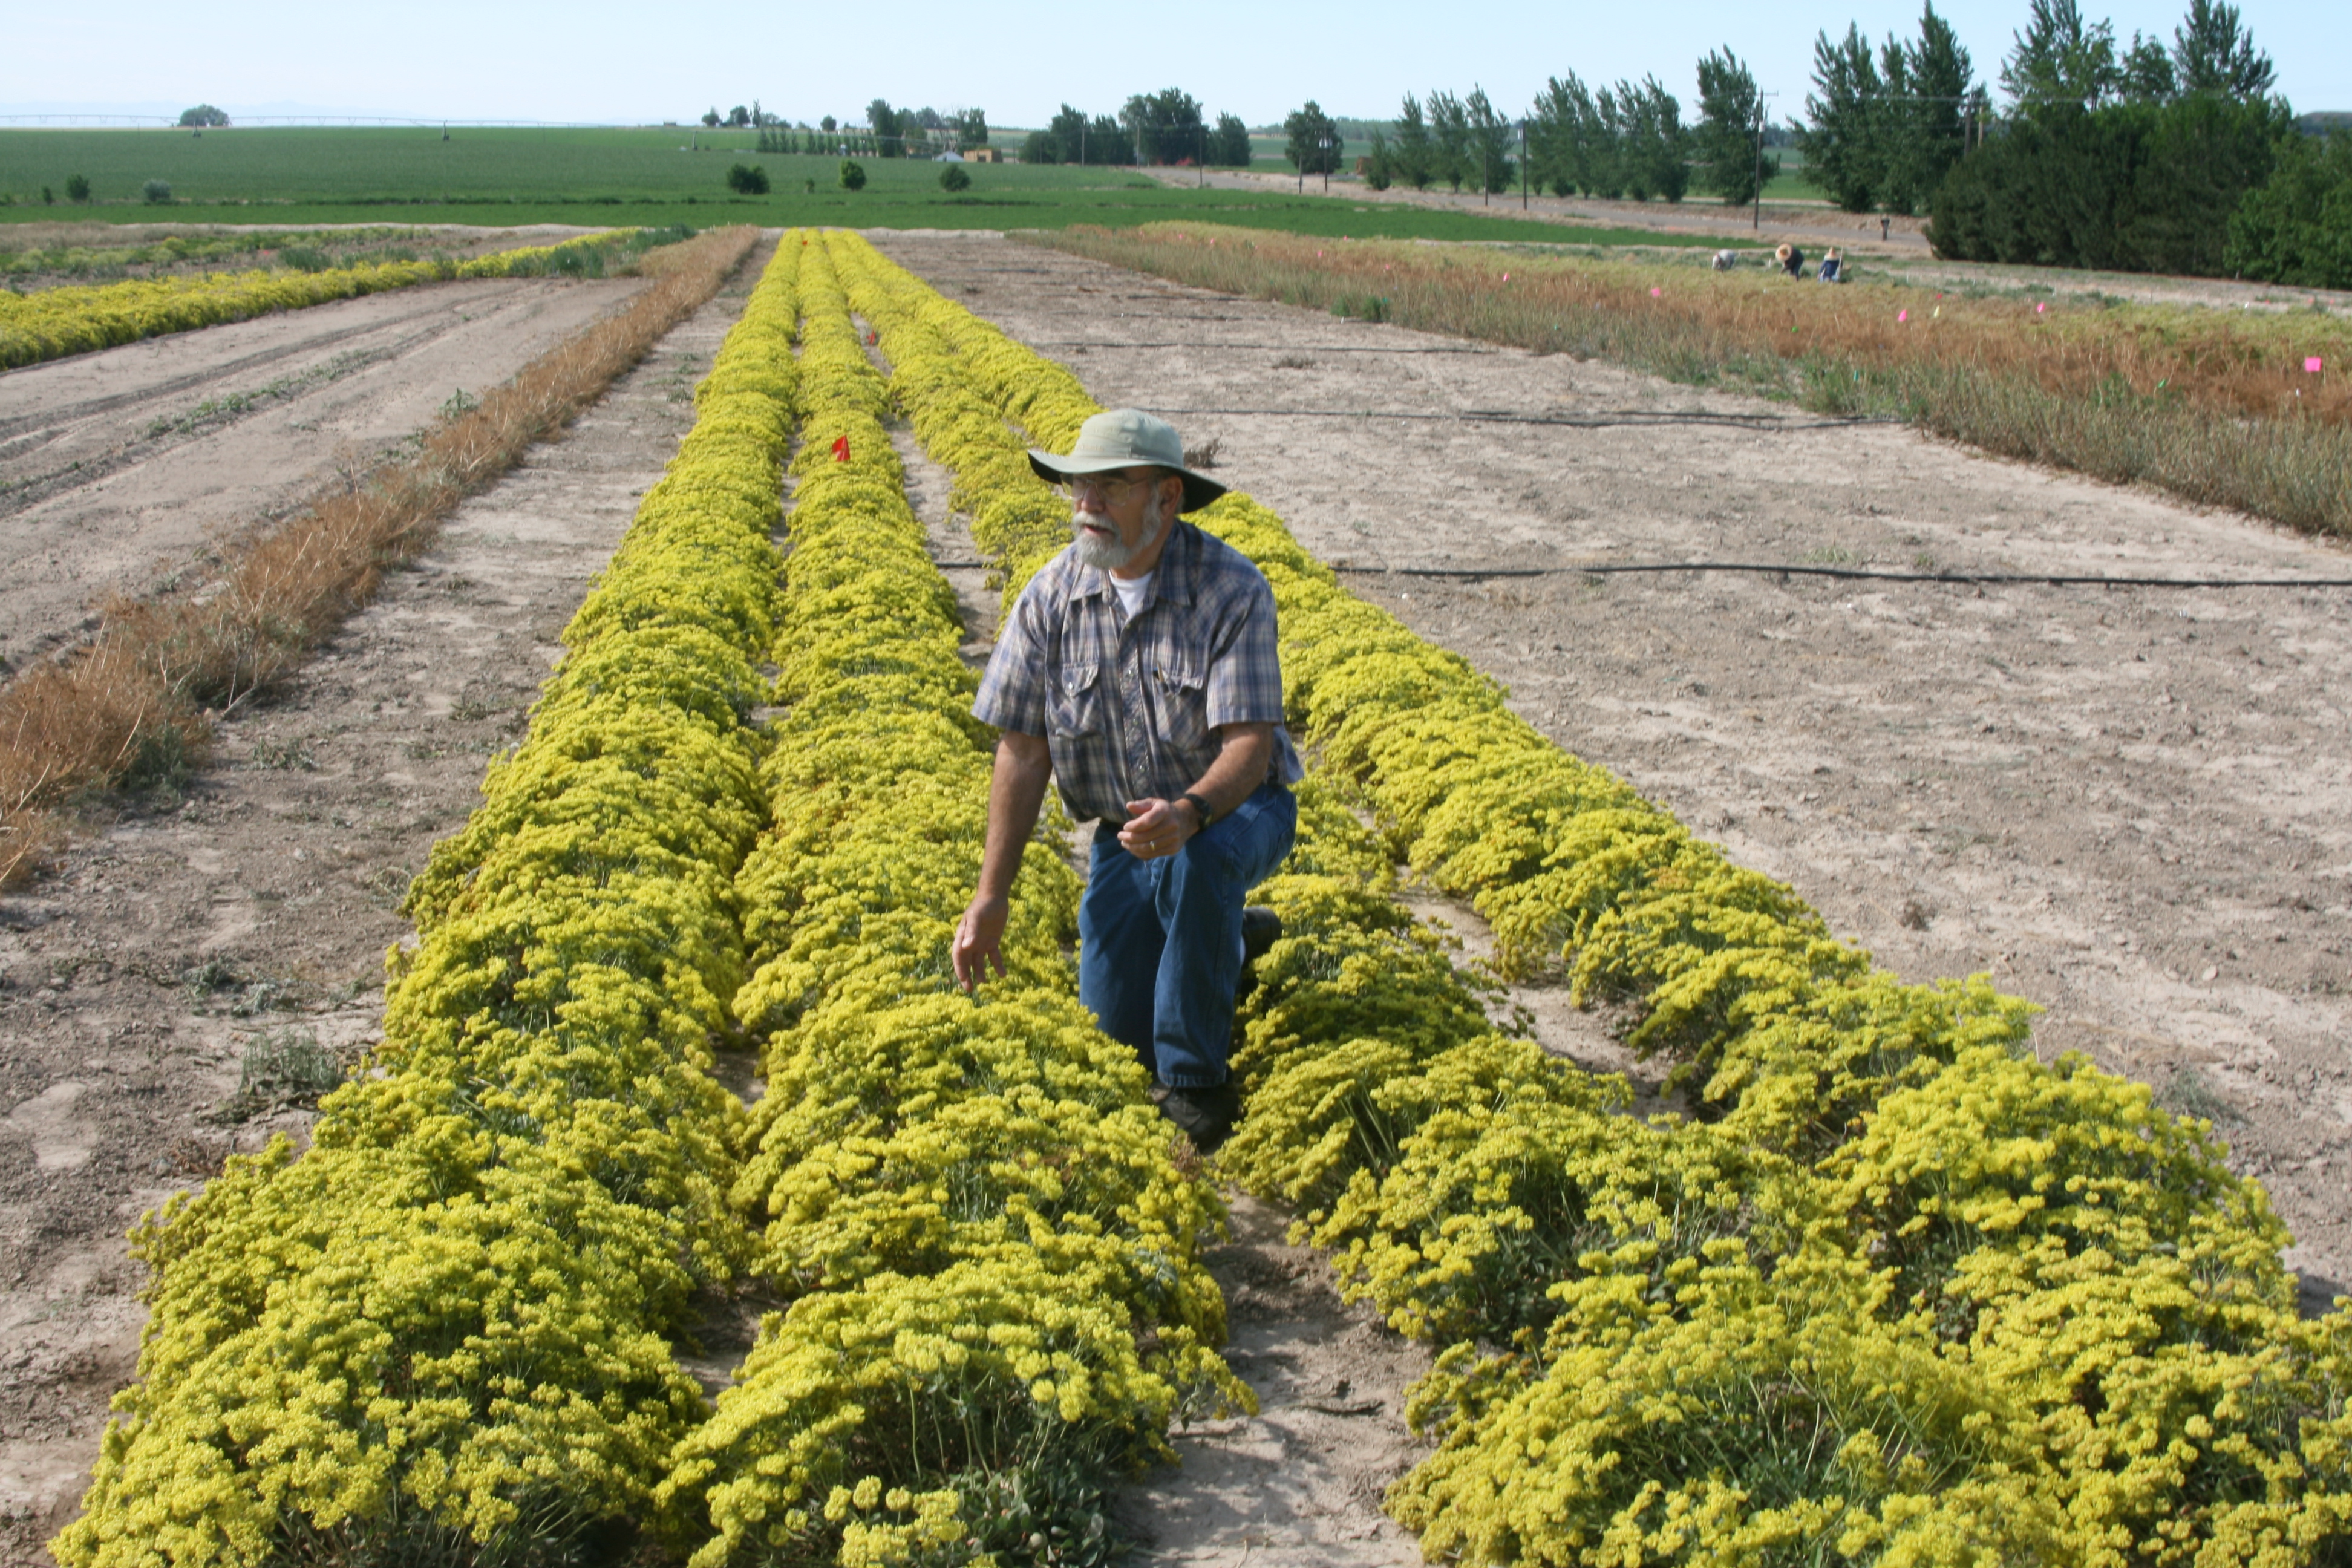 Clint Shock, MES Professor and Superintendent, Inspecting a row of Sulphur-Flowered Buckwheat at the Malheur Experiment Station.